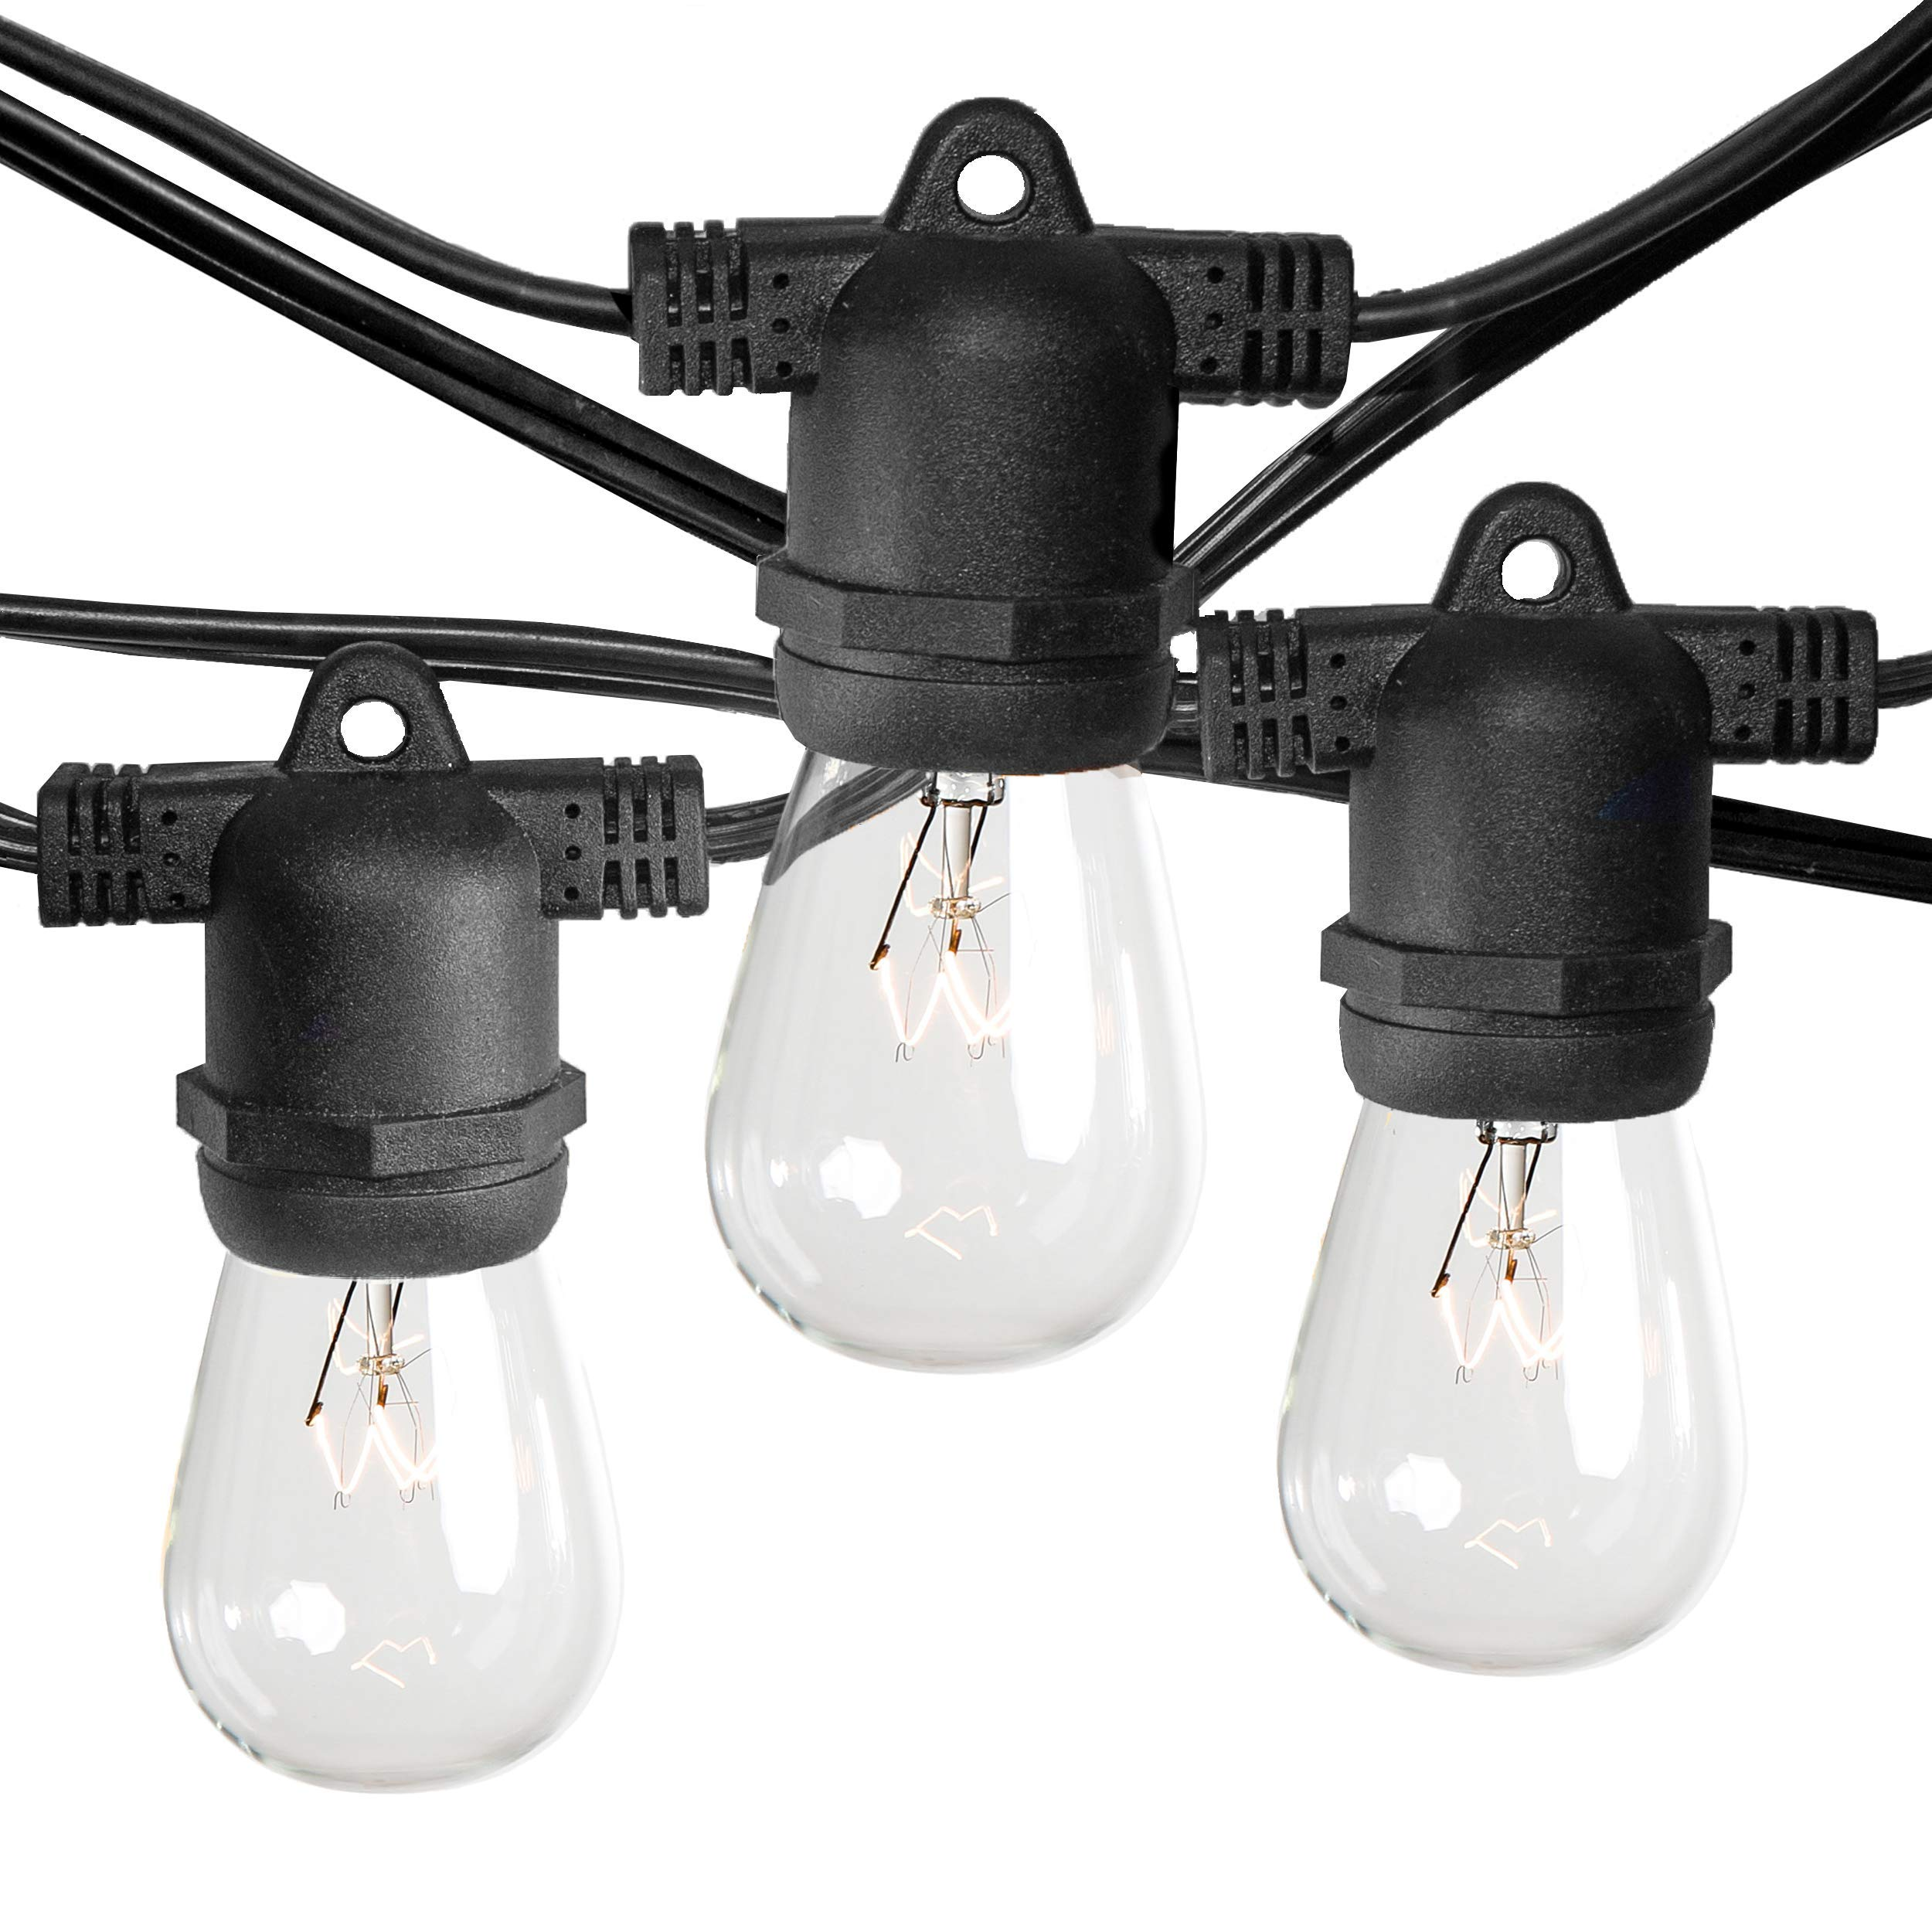 Hometown Evolution, Inc. Commercial E26 String Lights with 16 Gauge Wire (24 Foot 12 Socket, S14 11 Watt Clear Bulbs)